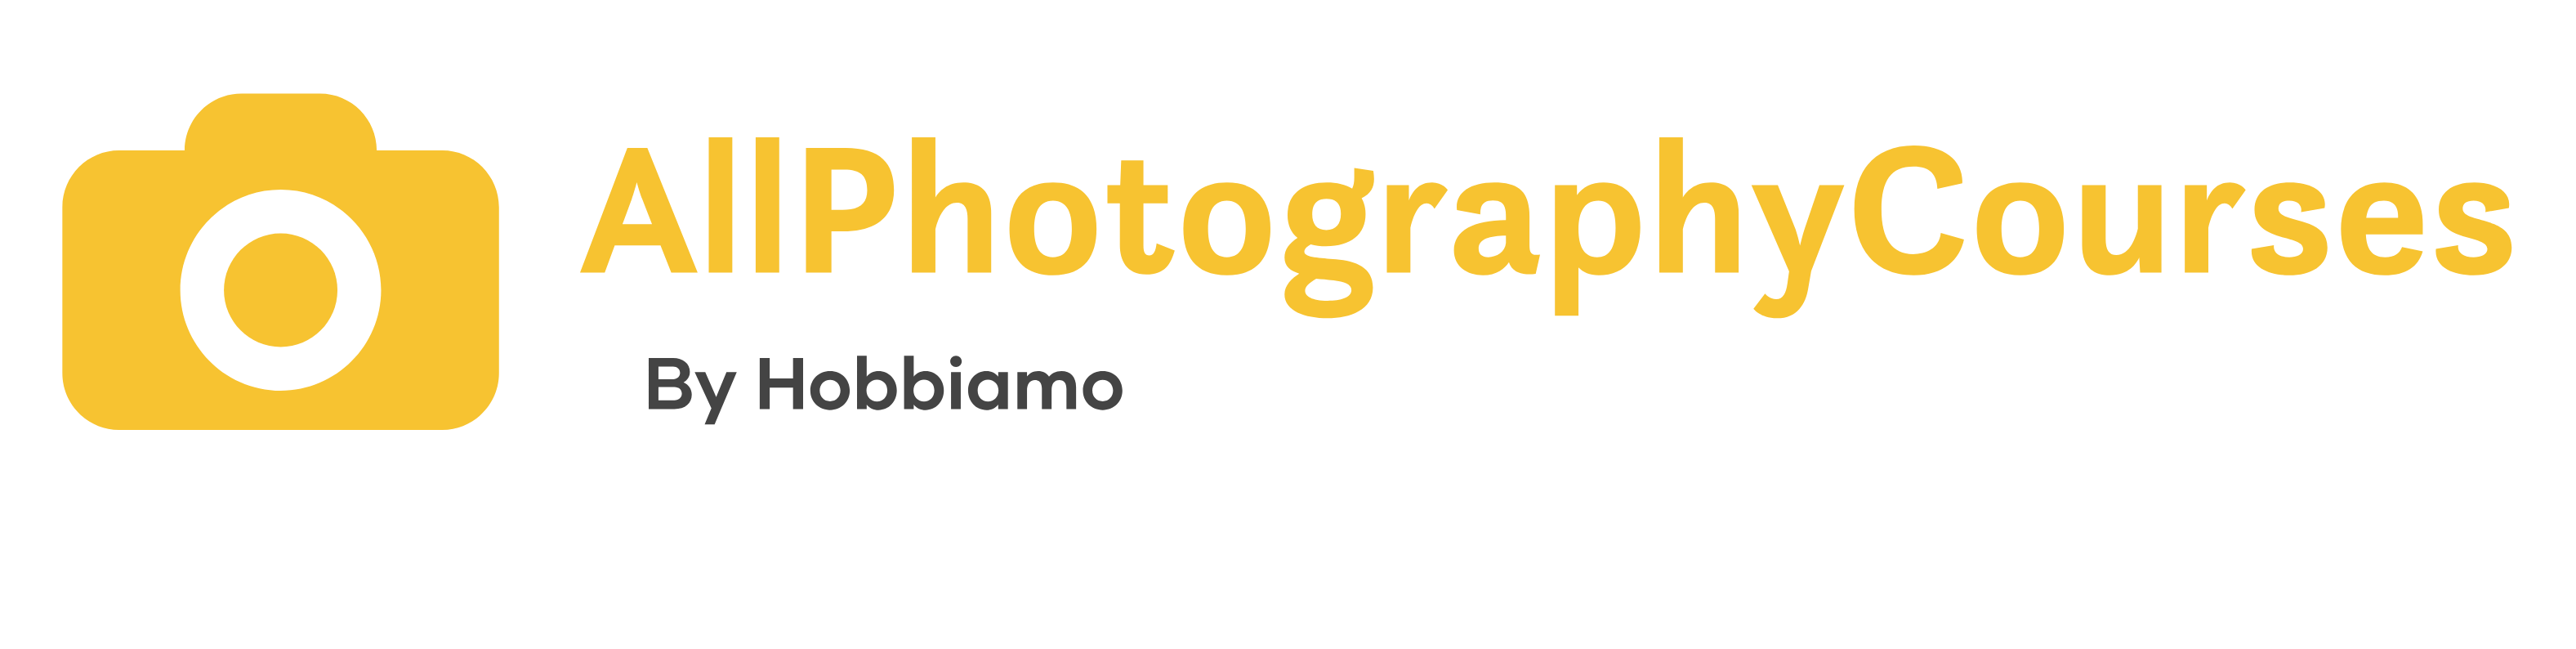 The AllPhotographyCourses Blog